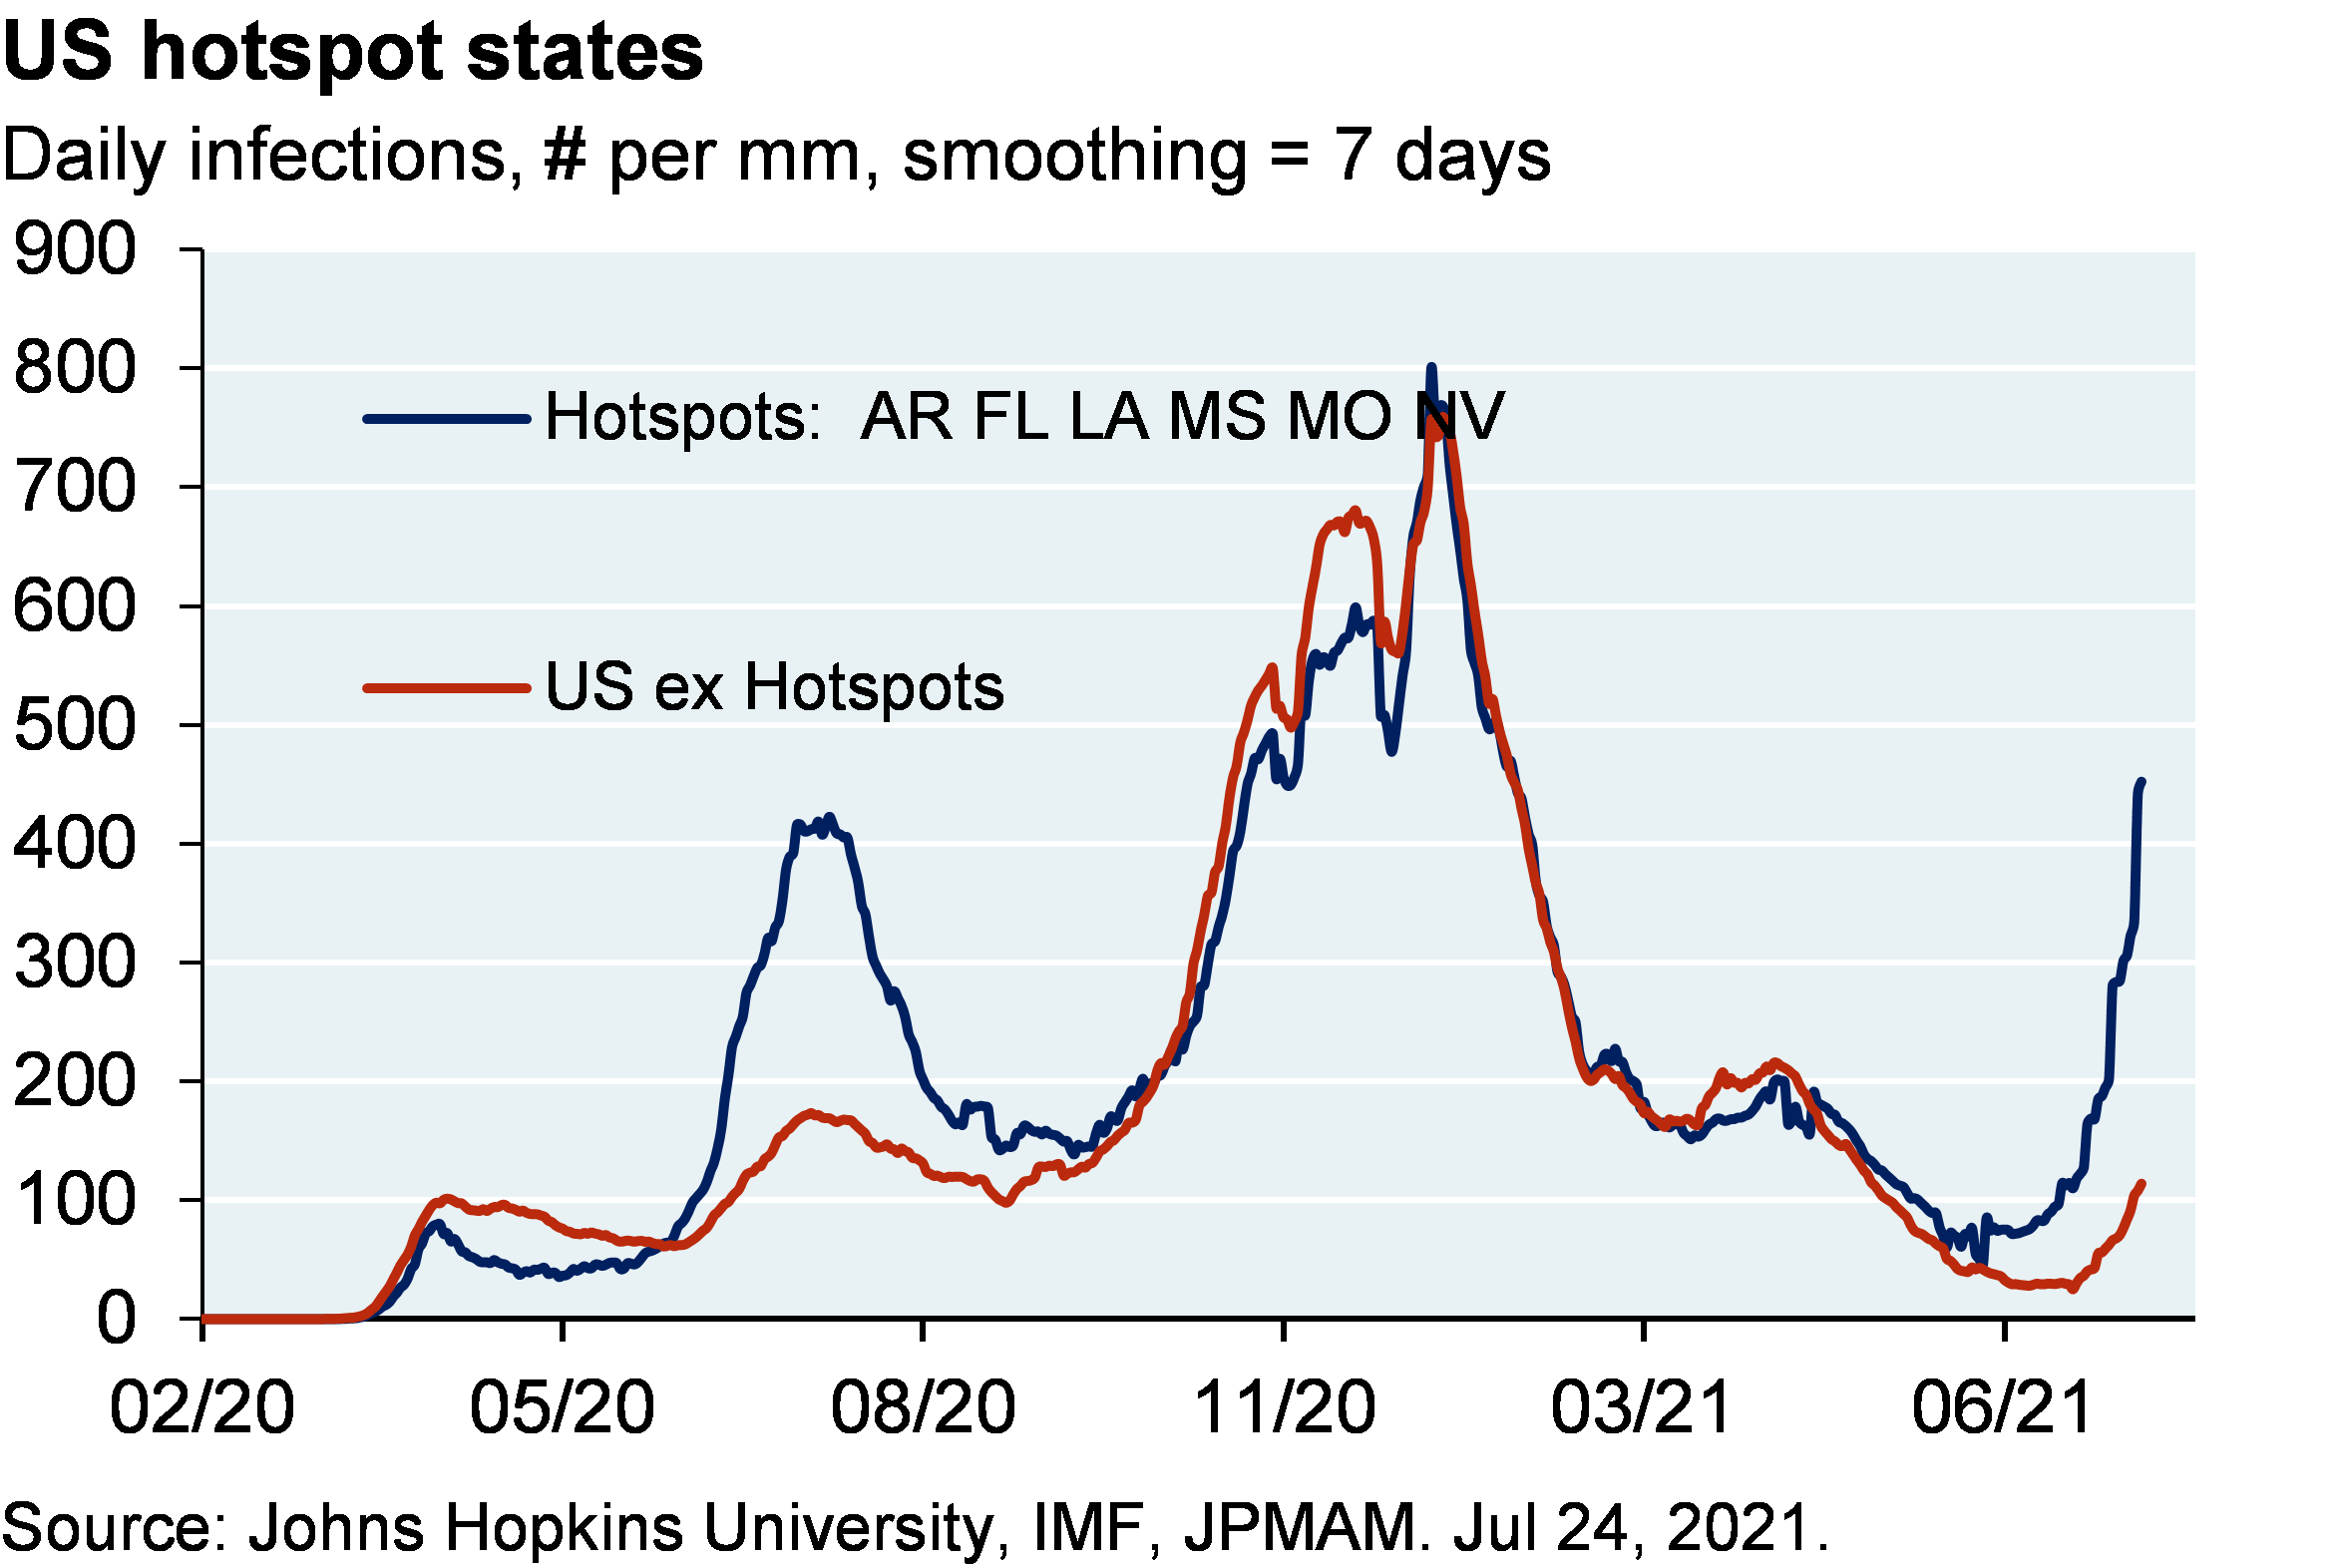 Line chart shows daily infection per million in US hotspot states compared to the US ex hotspot states. Hotspot states include Arkansas, Florida, Louisiana, Mississippi, Missouri and Nevada. At their most recent point, the hotspot states have seen a spike to almost 450 infections per million compared to 100 infections per million among the US ex hotspot states.